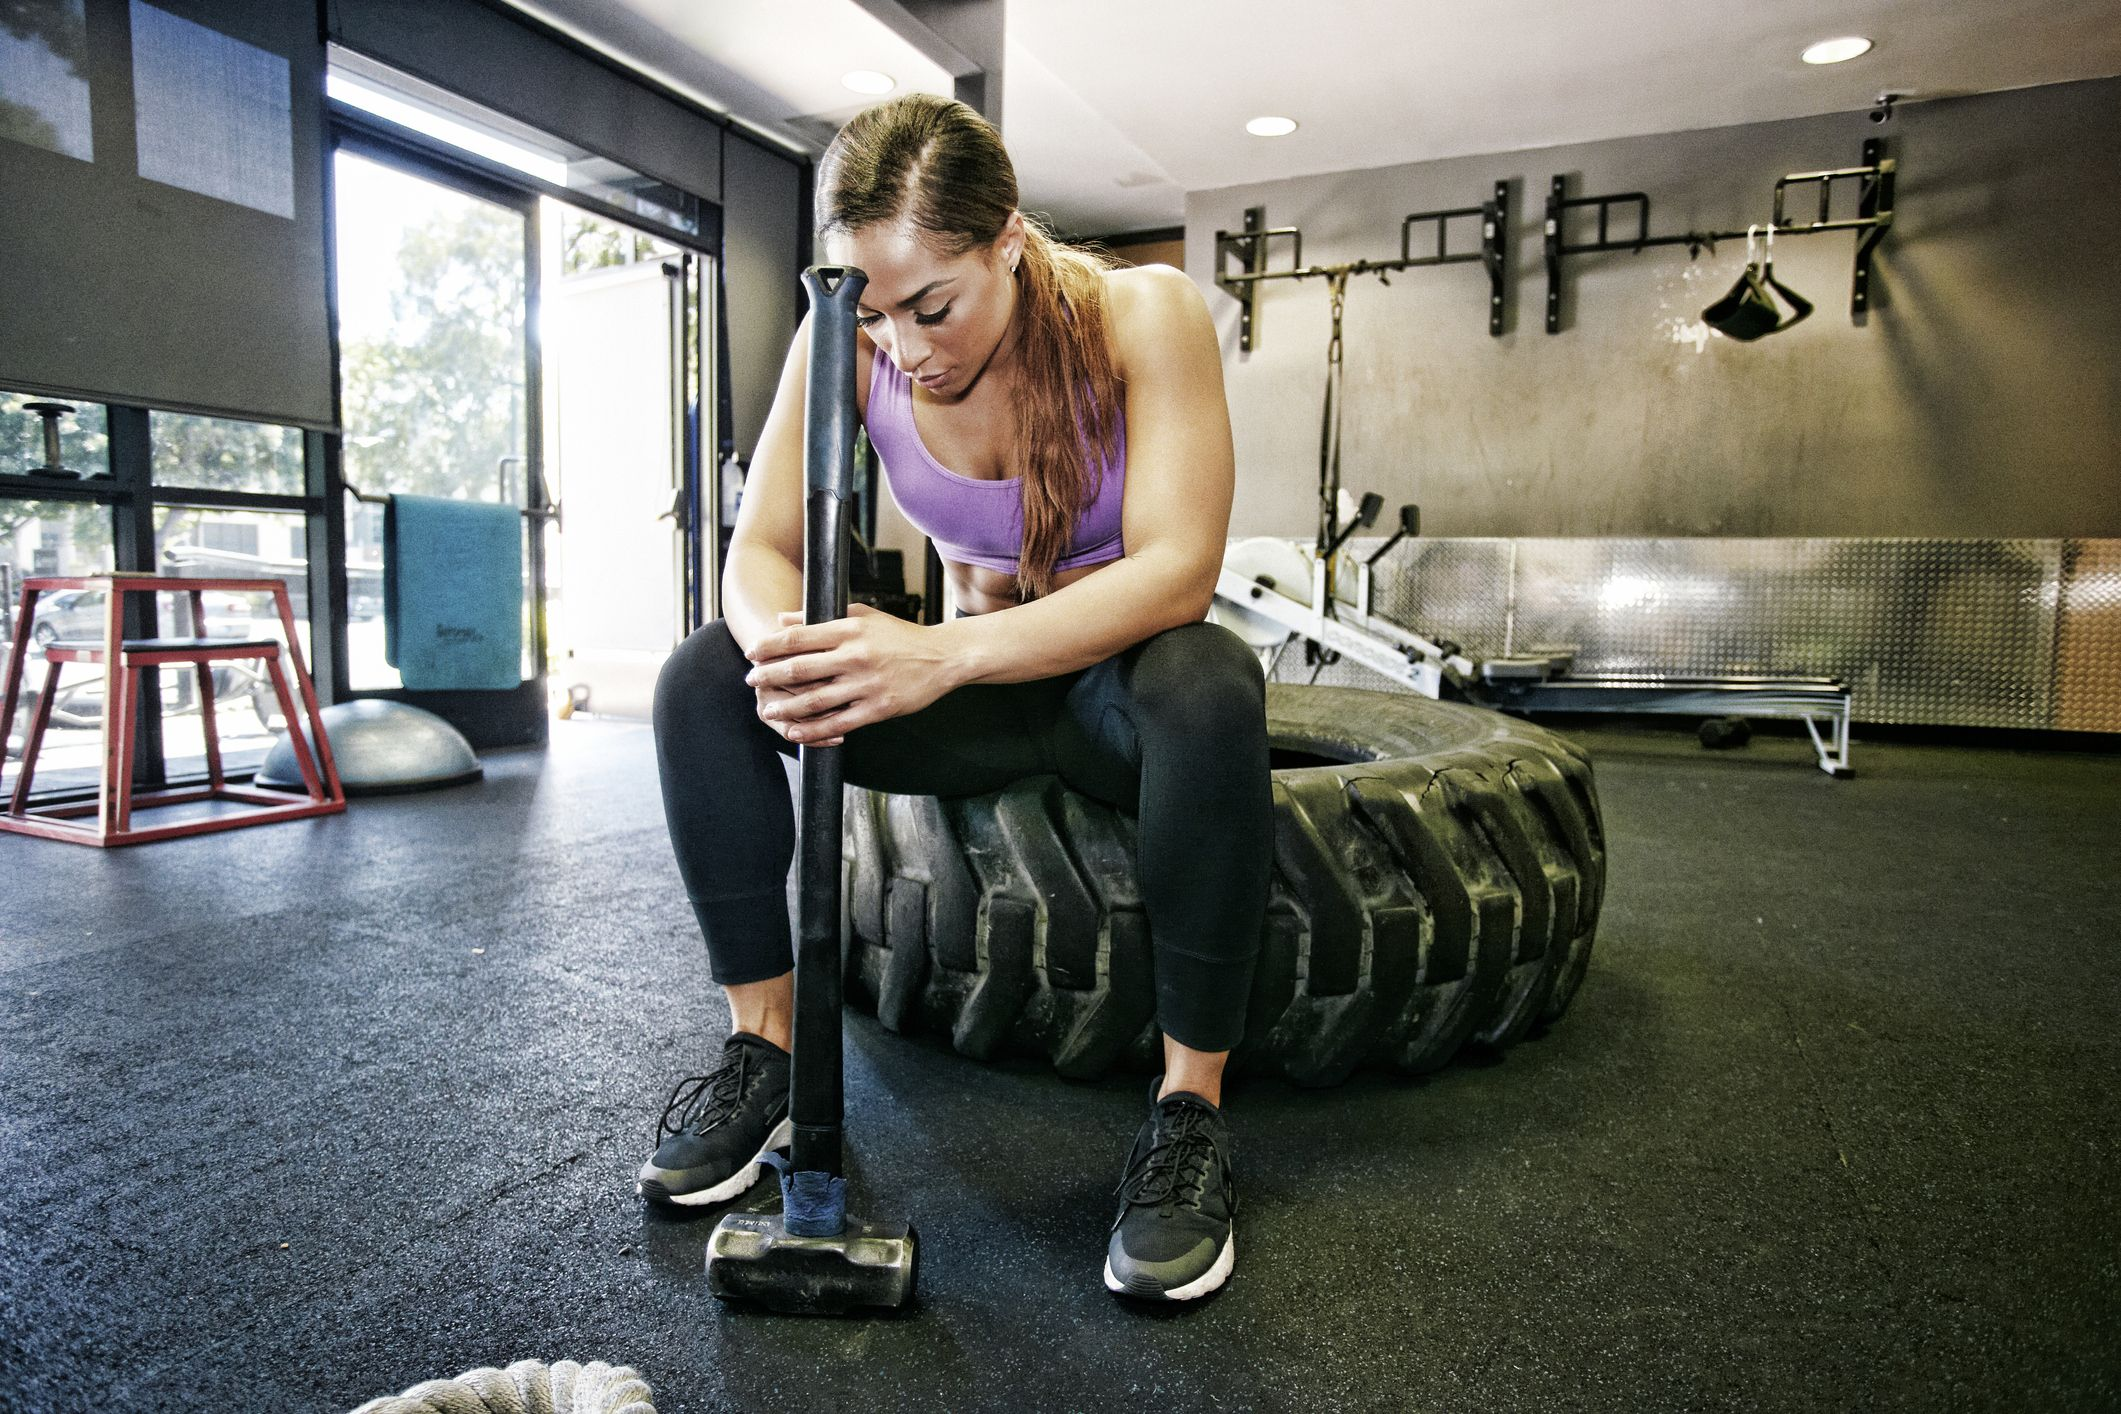 Your Fitness Plateau And Sleep Problems Might Actually Be A Sign You're Overtraining